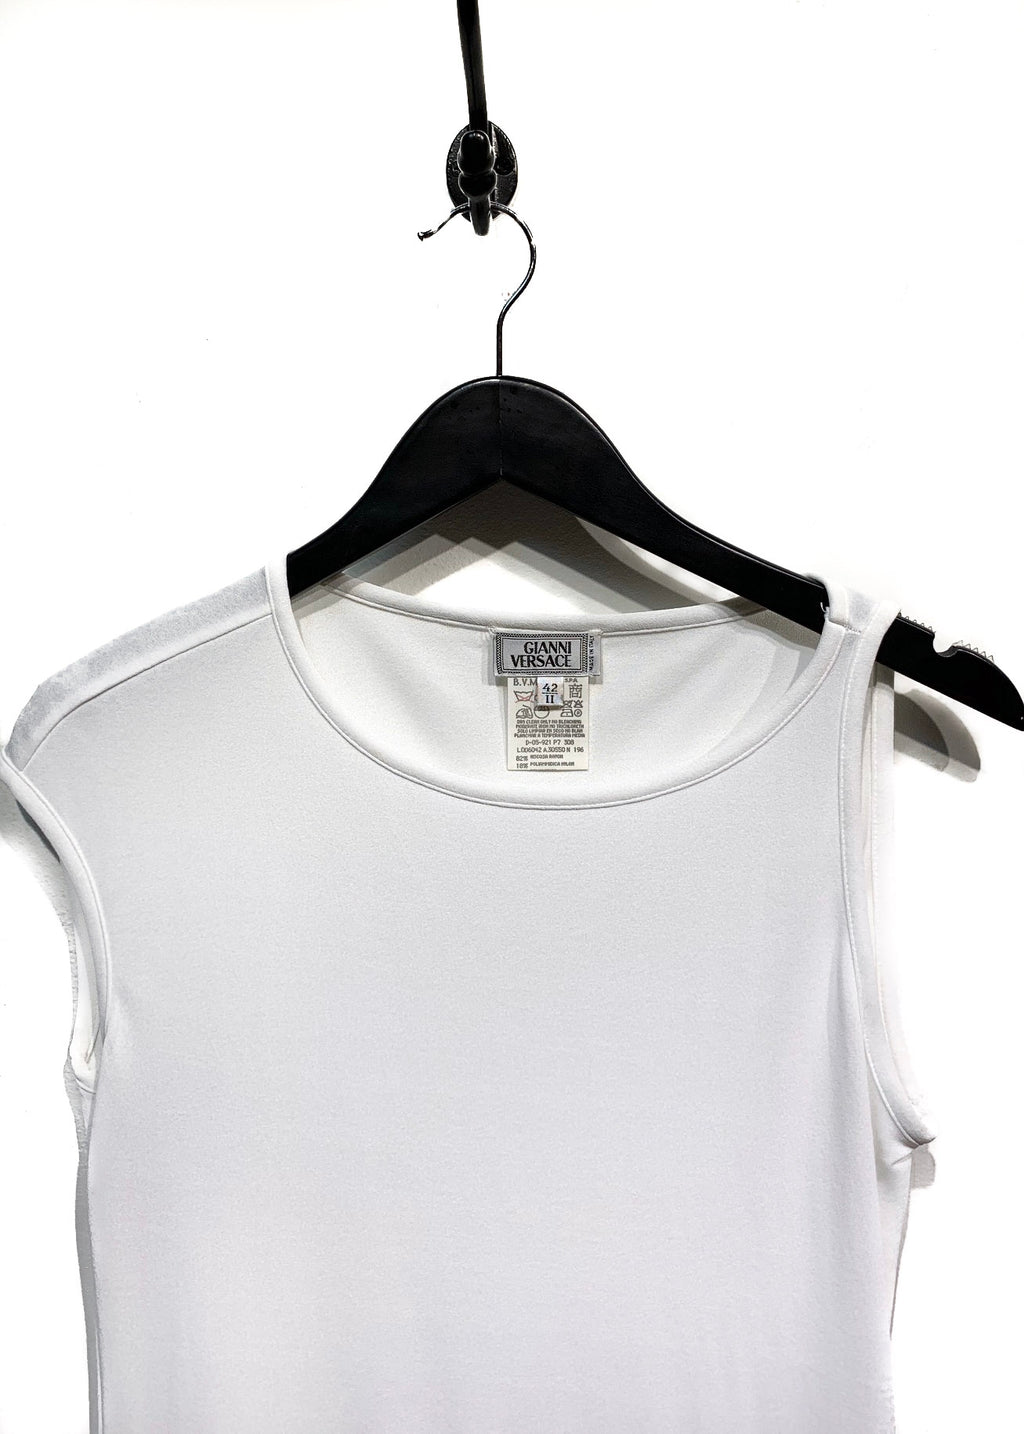 Gianni Versace White One Sleeve Tank